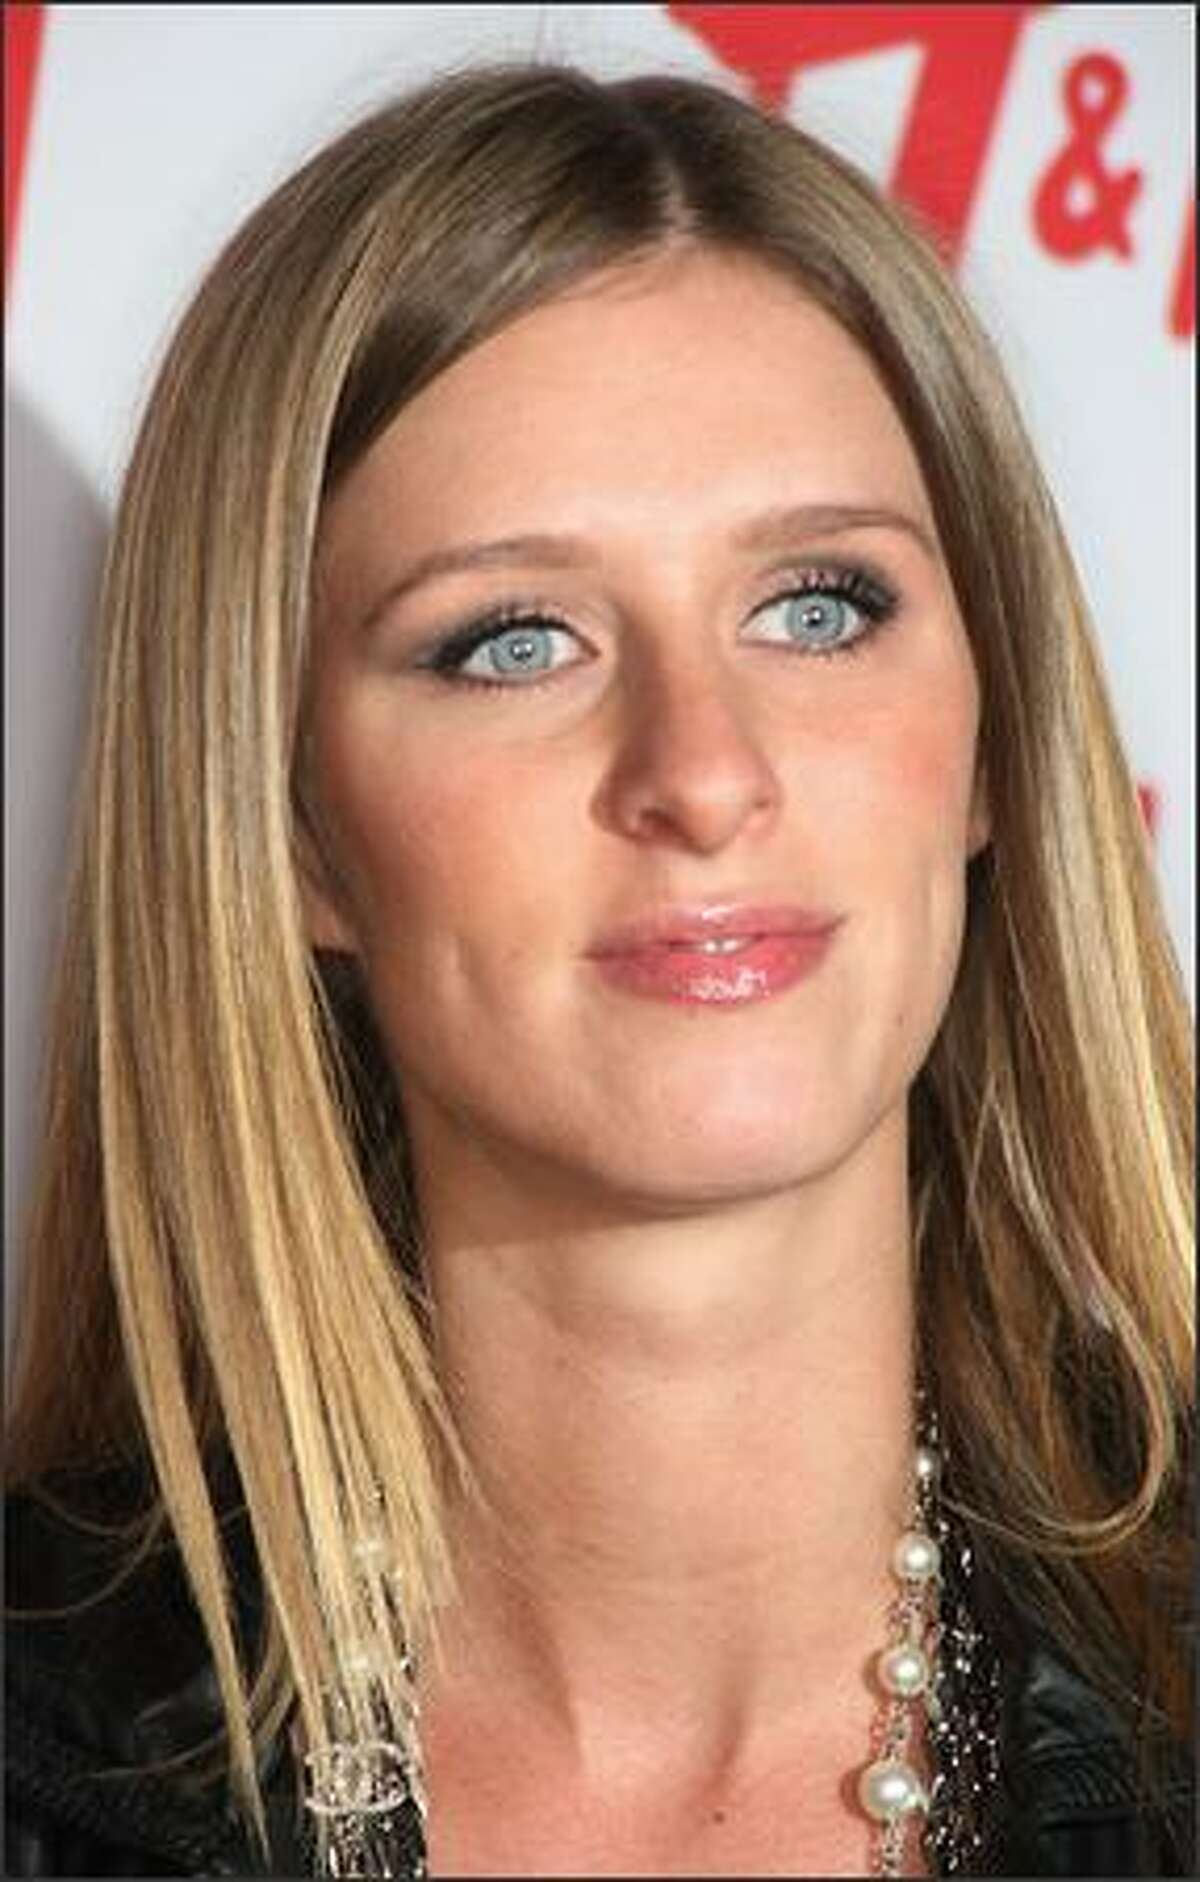 Nicky Hilton attends H&M's Divided Exclusive Collection launch party on Tuesday in West Hollywood, Calif.